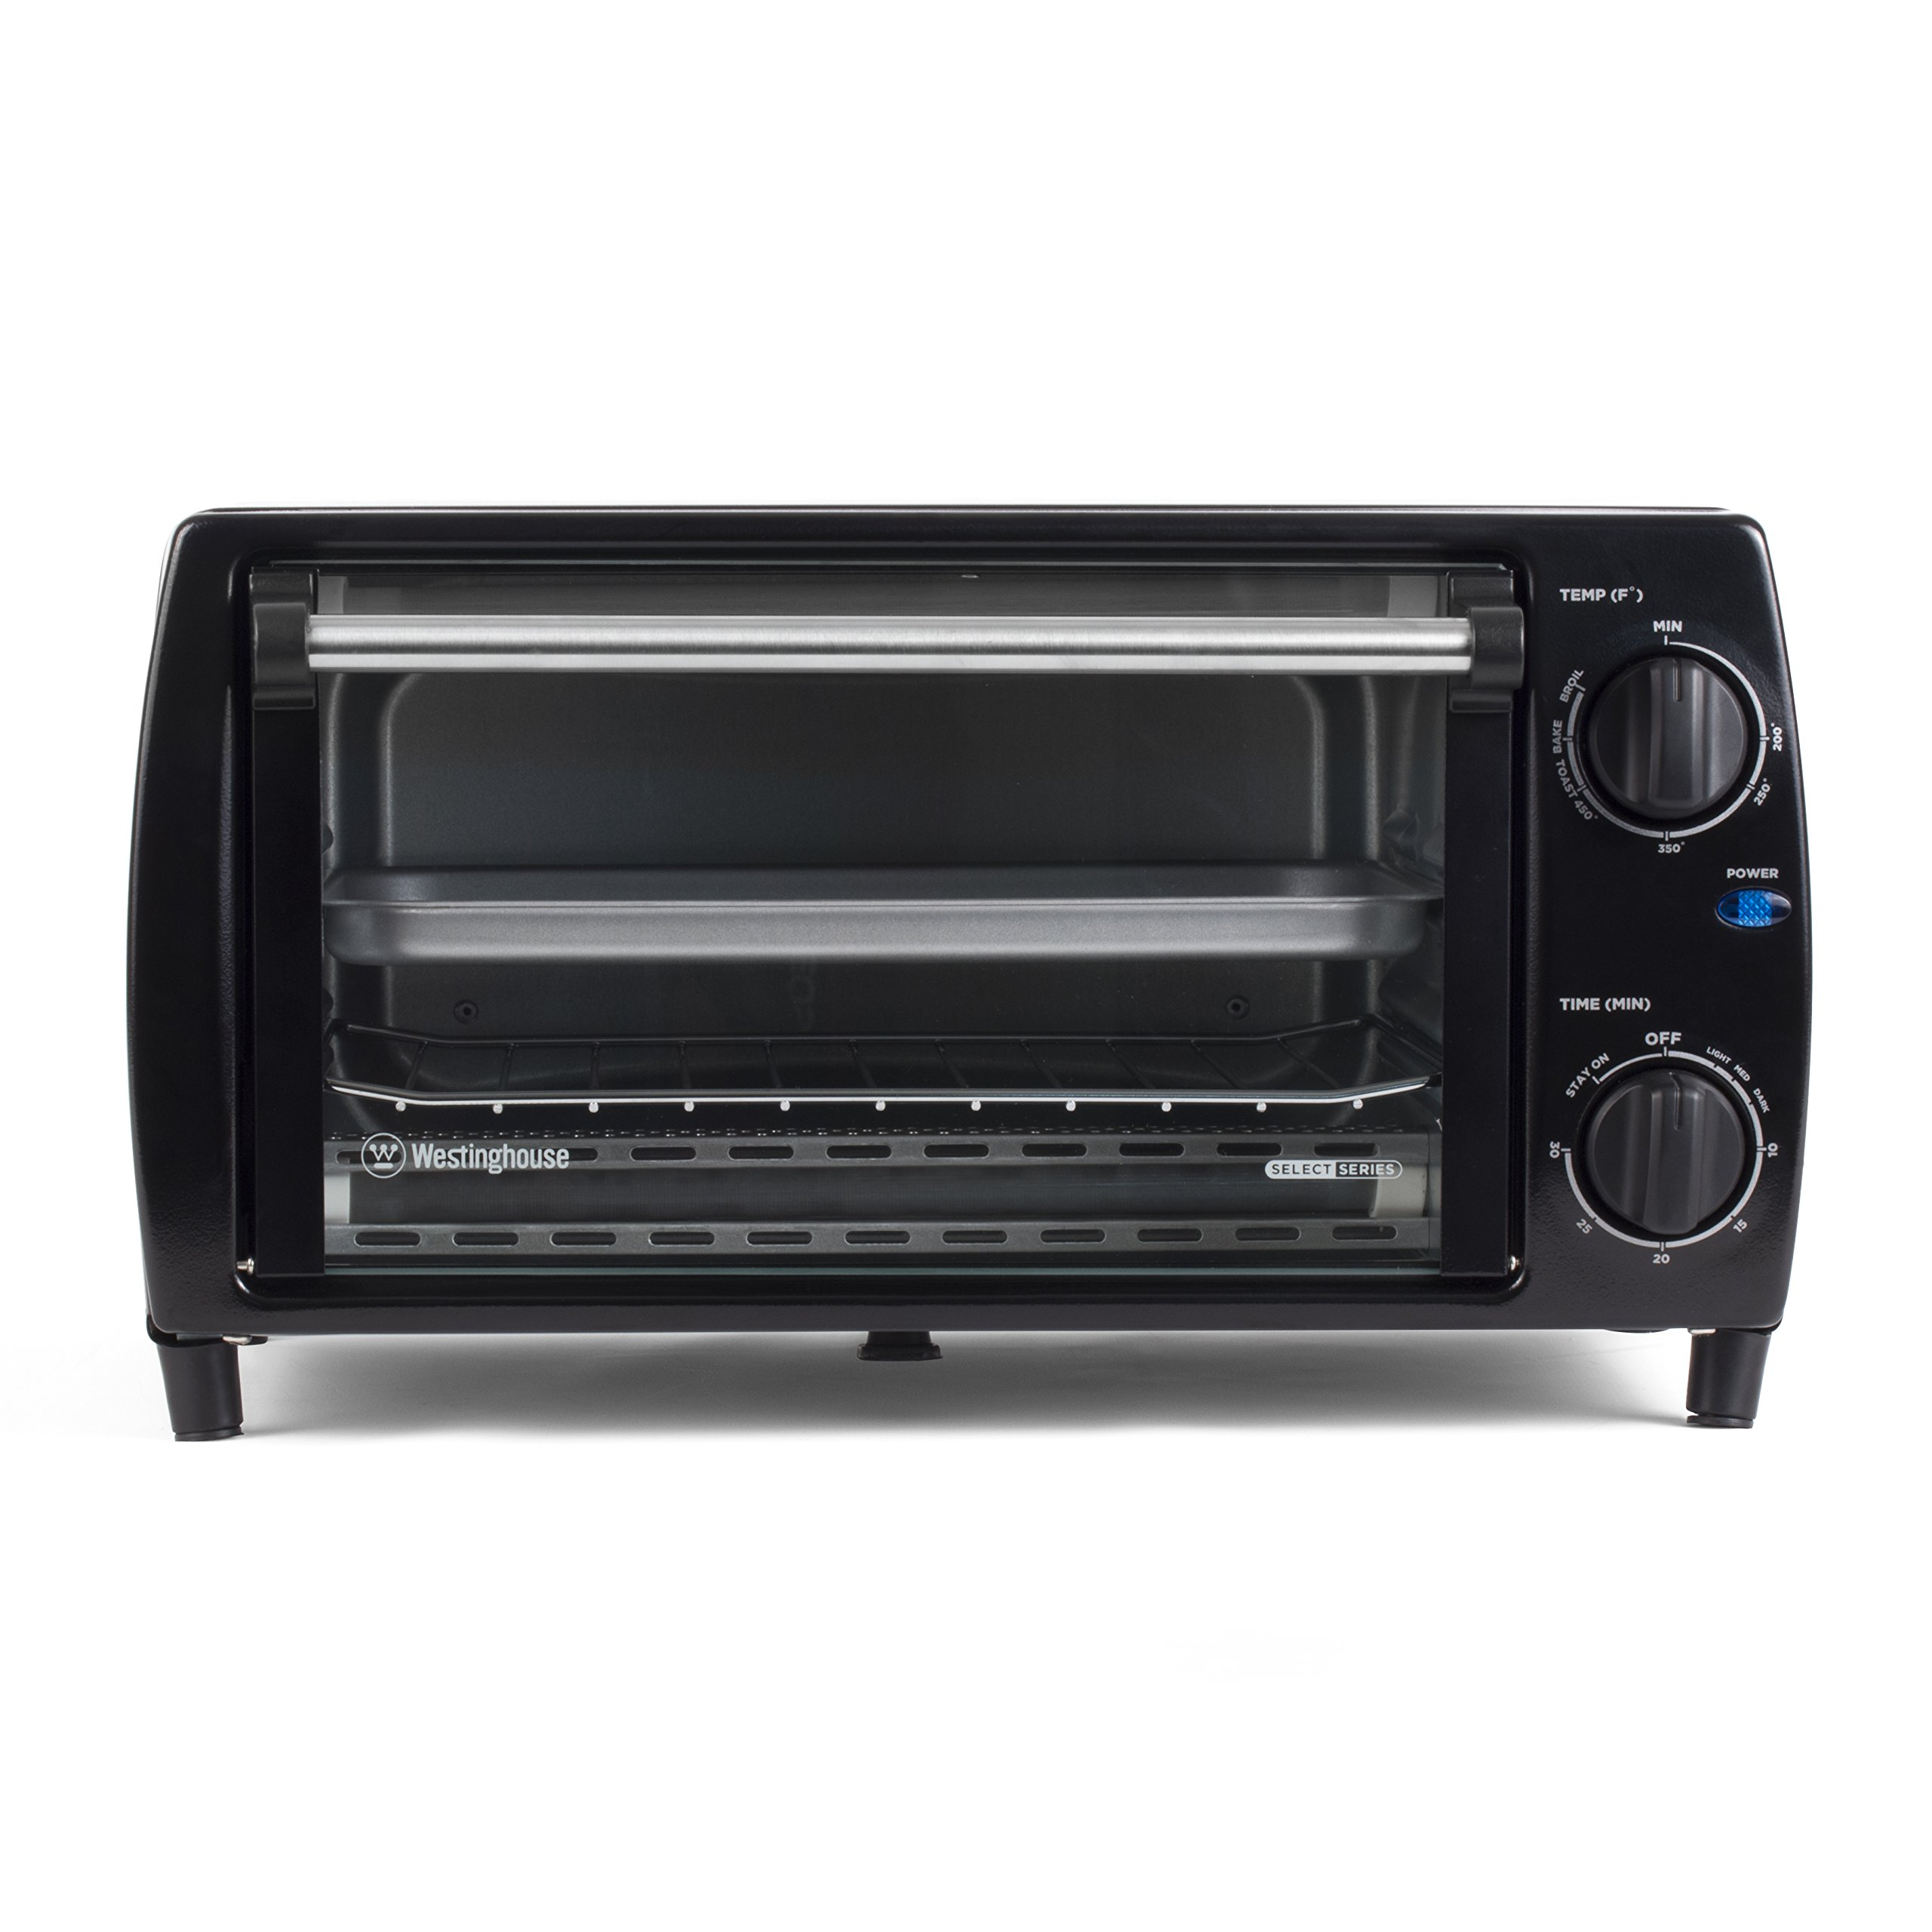 westinghouse select series wto1010b 4 slice countertop toaster oven black new. Black Bedroom Furniture Sets. Home Design Ideas